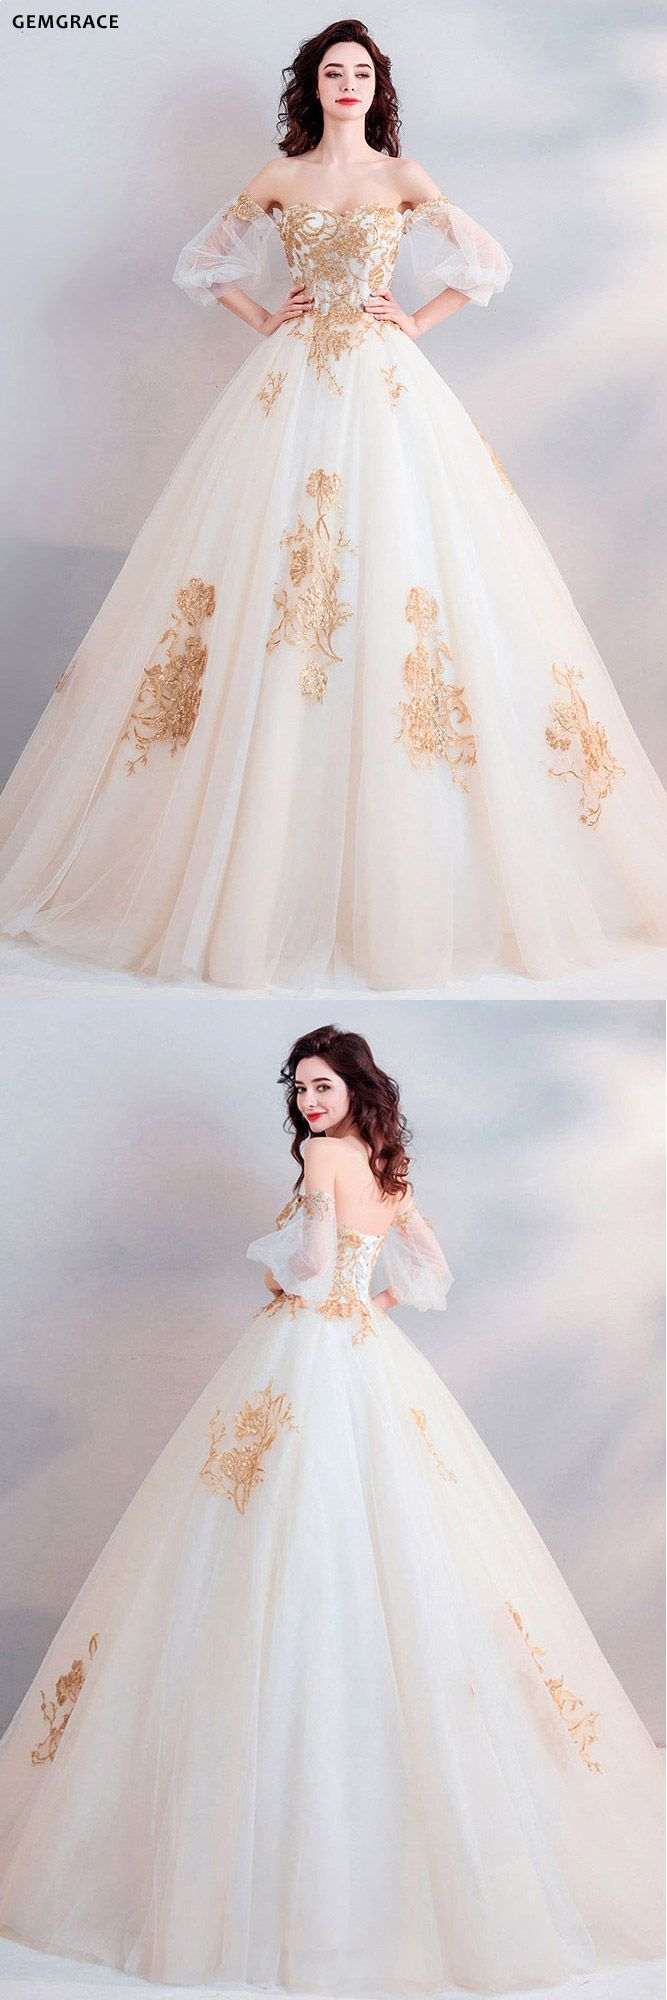 $11.11, Classic Gold With White Ball Gown Princess Wedding Dress